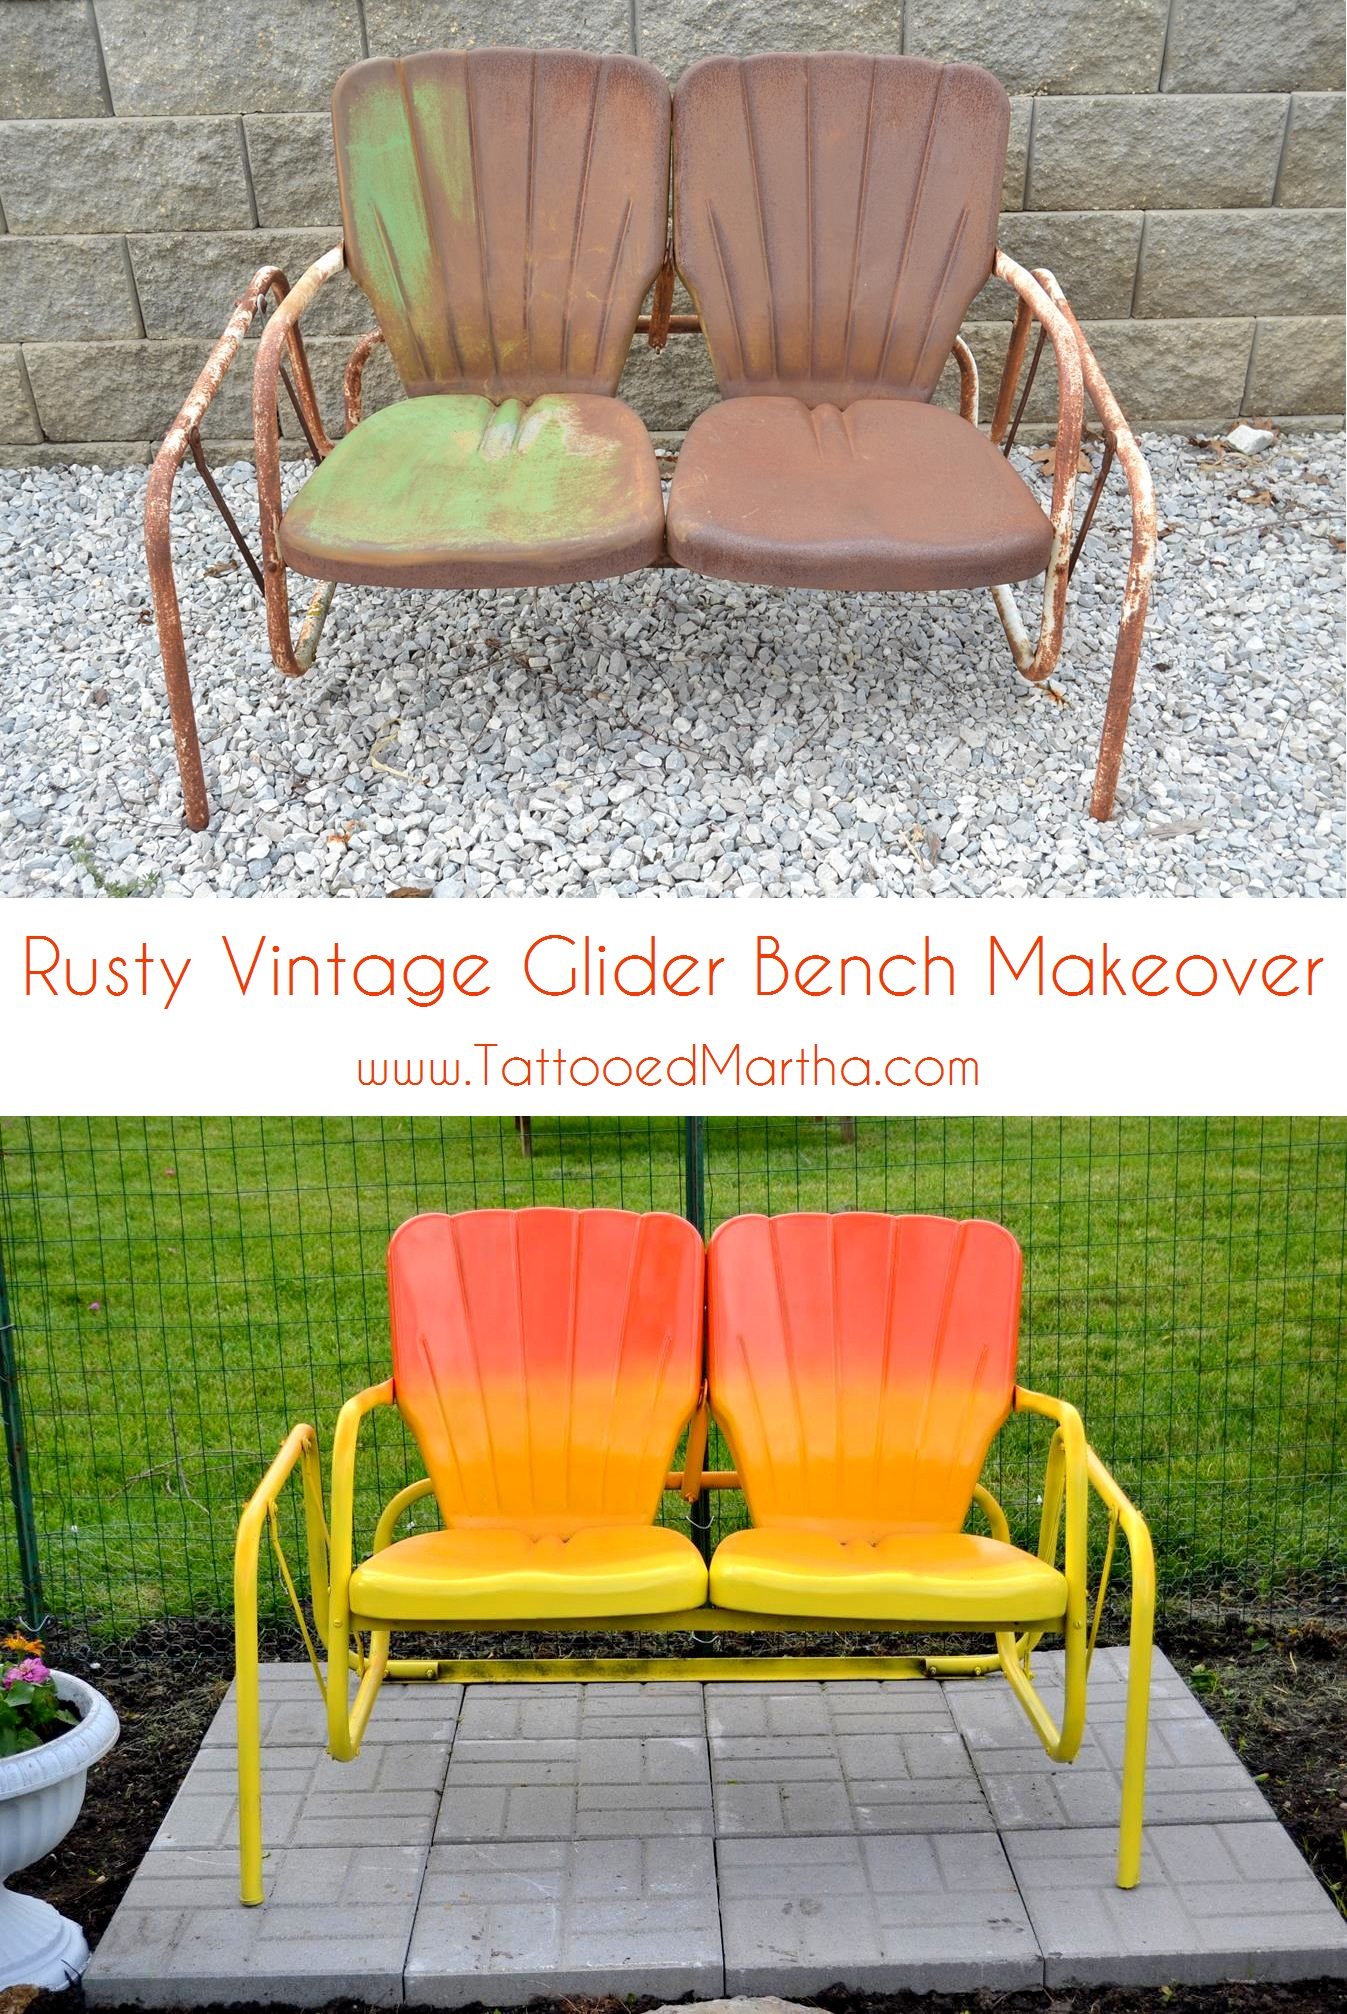 Rusty Vintage Glider Bench Makeover